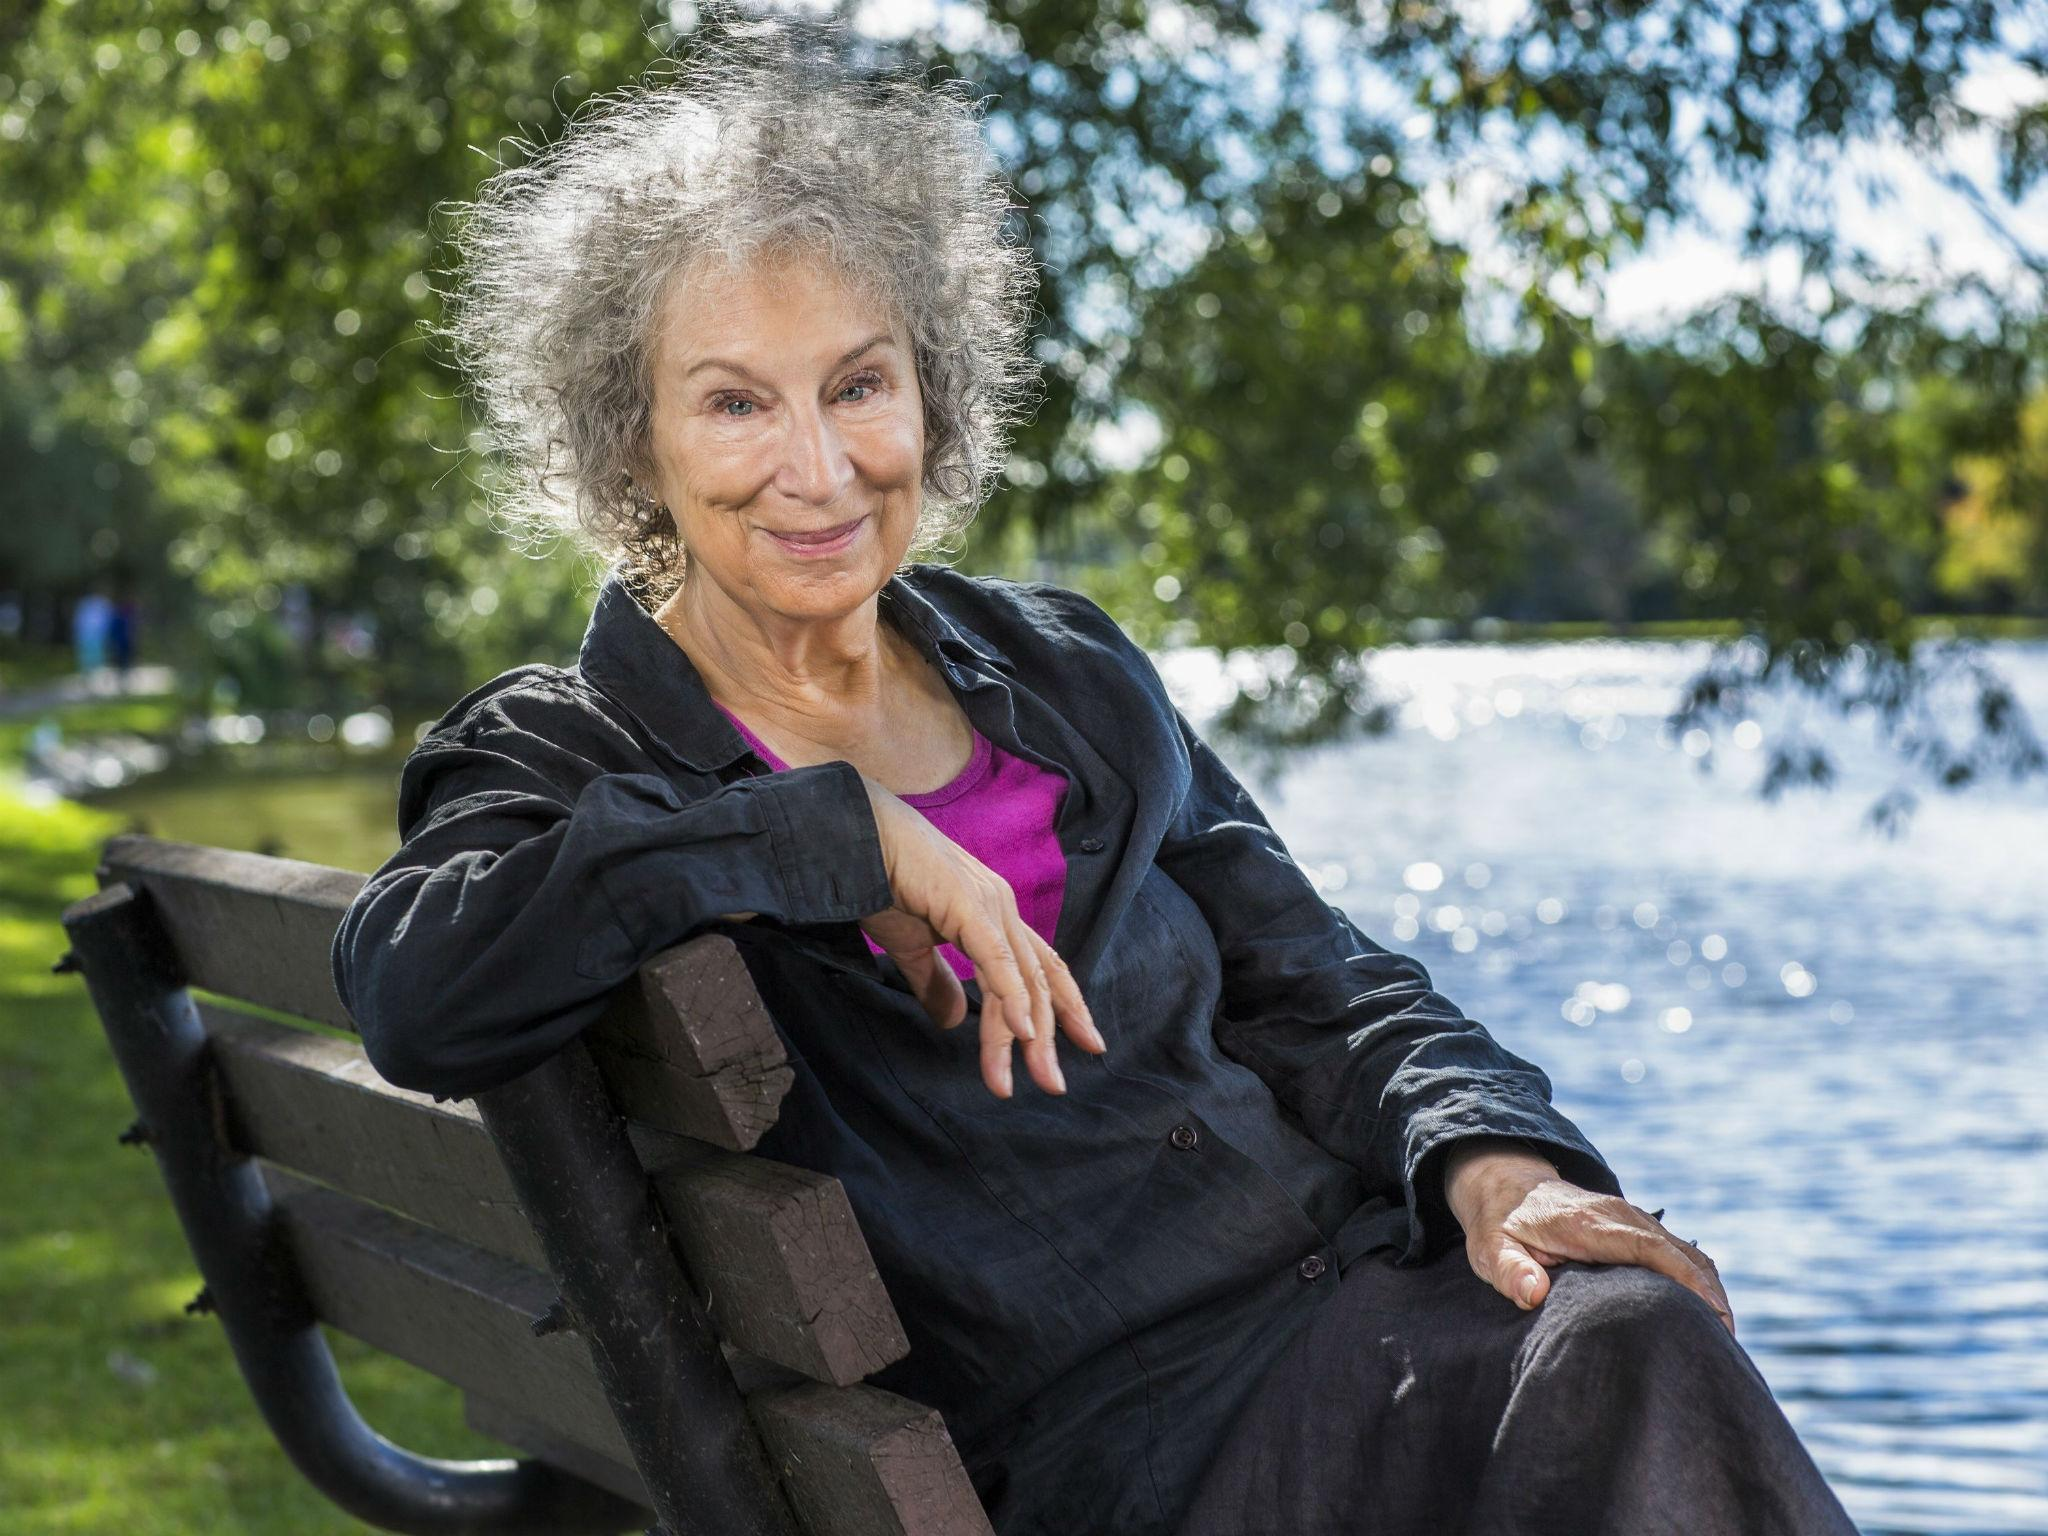 Booker Prize shortlist: Margaret Atwood and Salman Rushdie among authors competing for literary honour